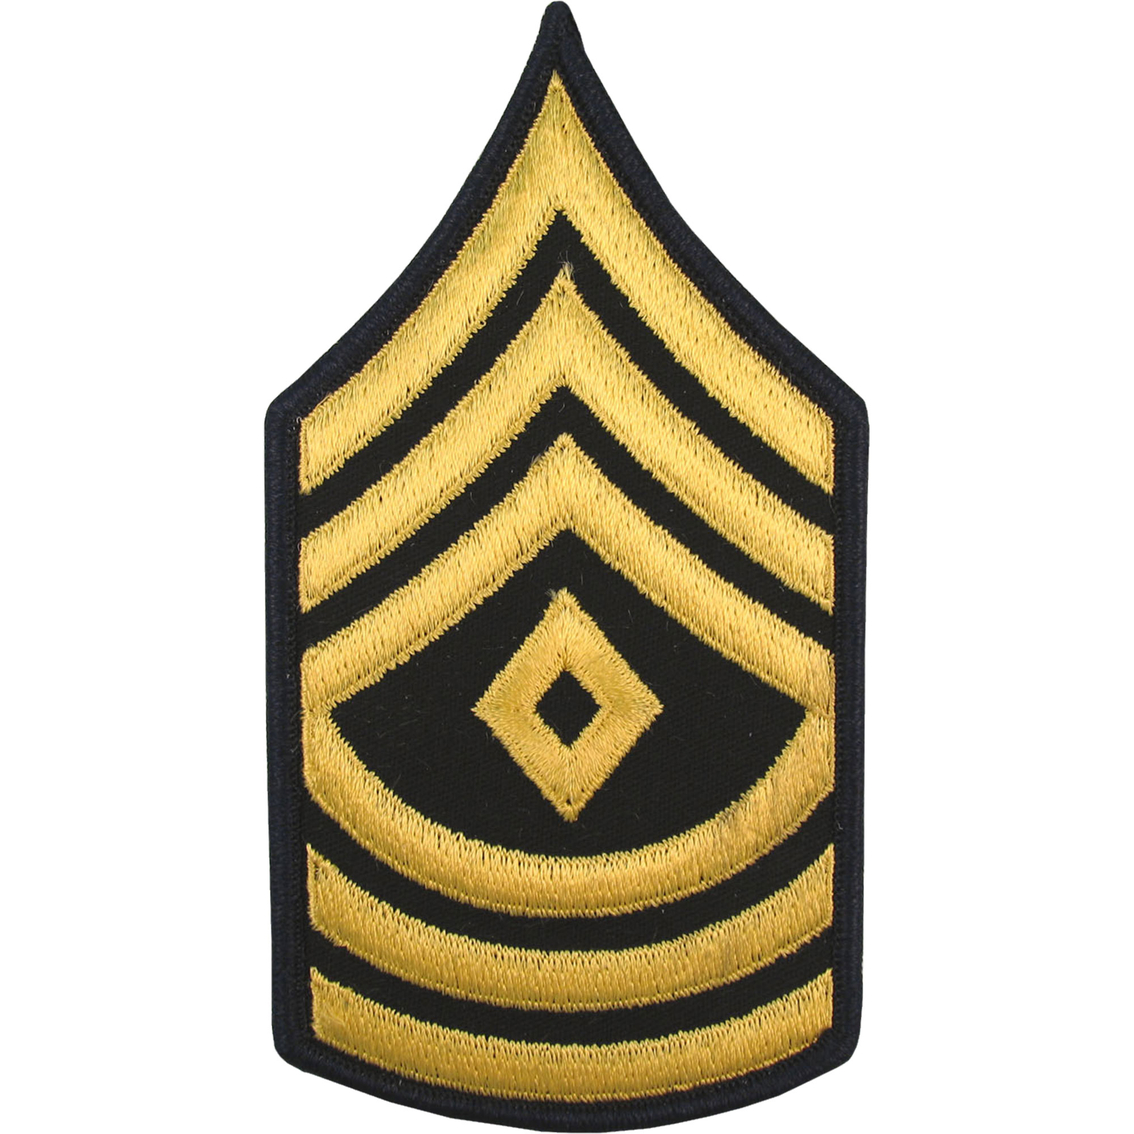 army 1sg large asu sew on rank large asu rank military school supplies clip art free school supplies clipart free images